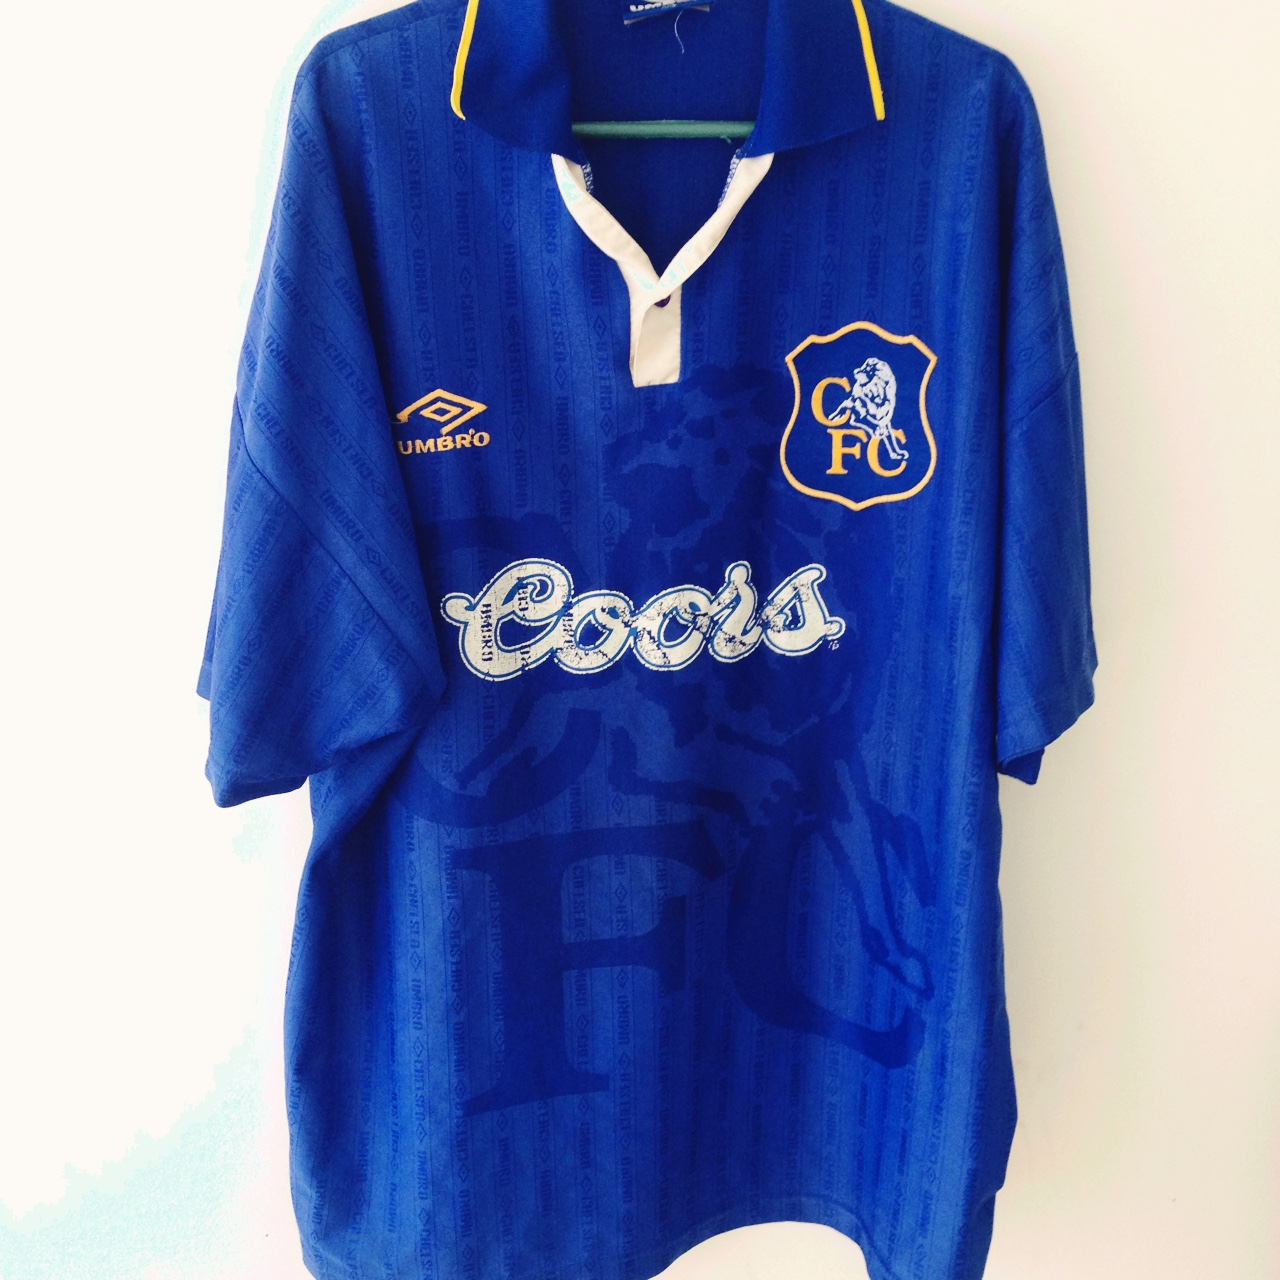 huge selection of 6fd9a acb73 Vintage Chelsea 1995 Umbro Home jersey. The classic ...